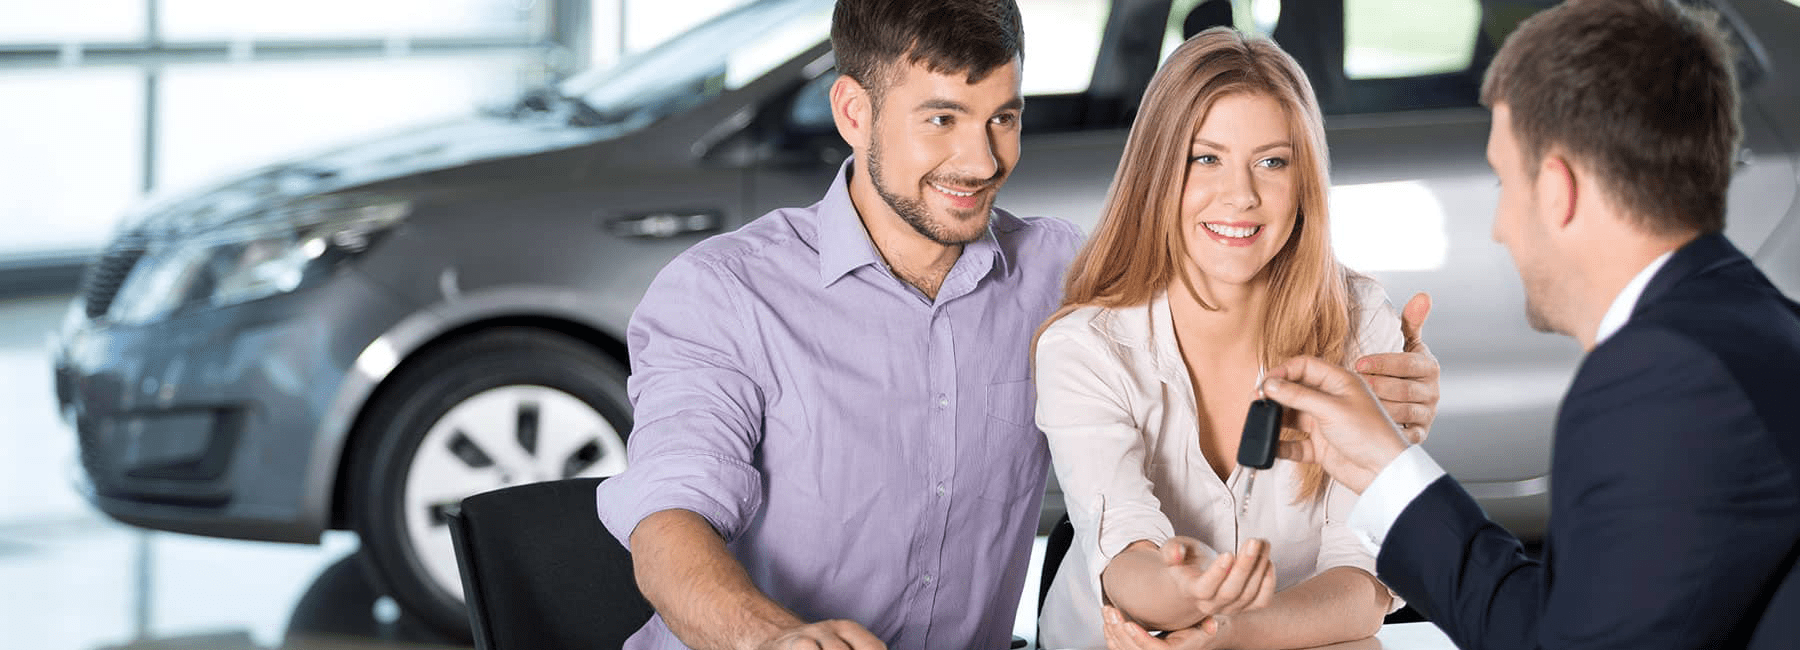 smiling couple meets with finance officer in car showroom